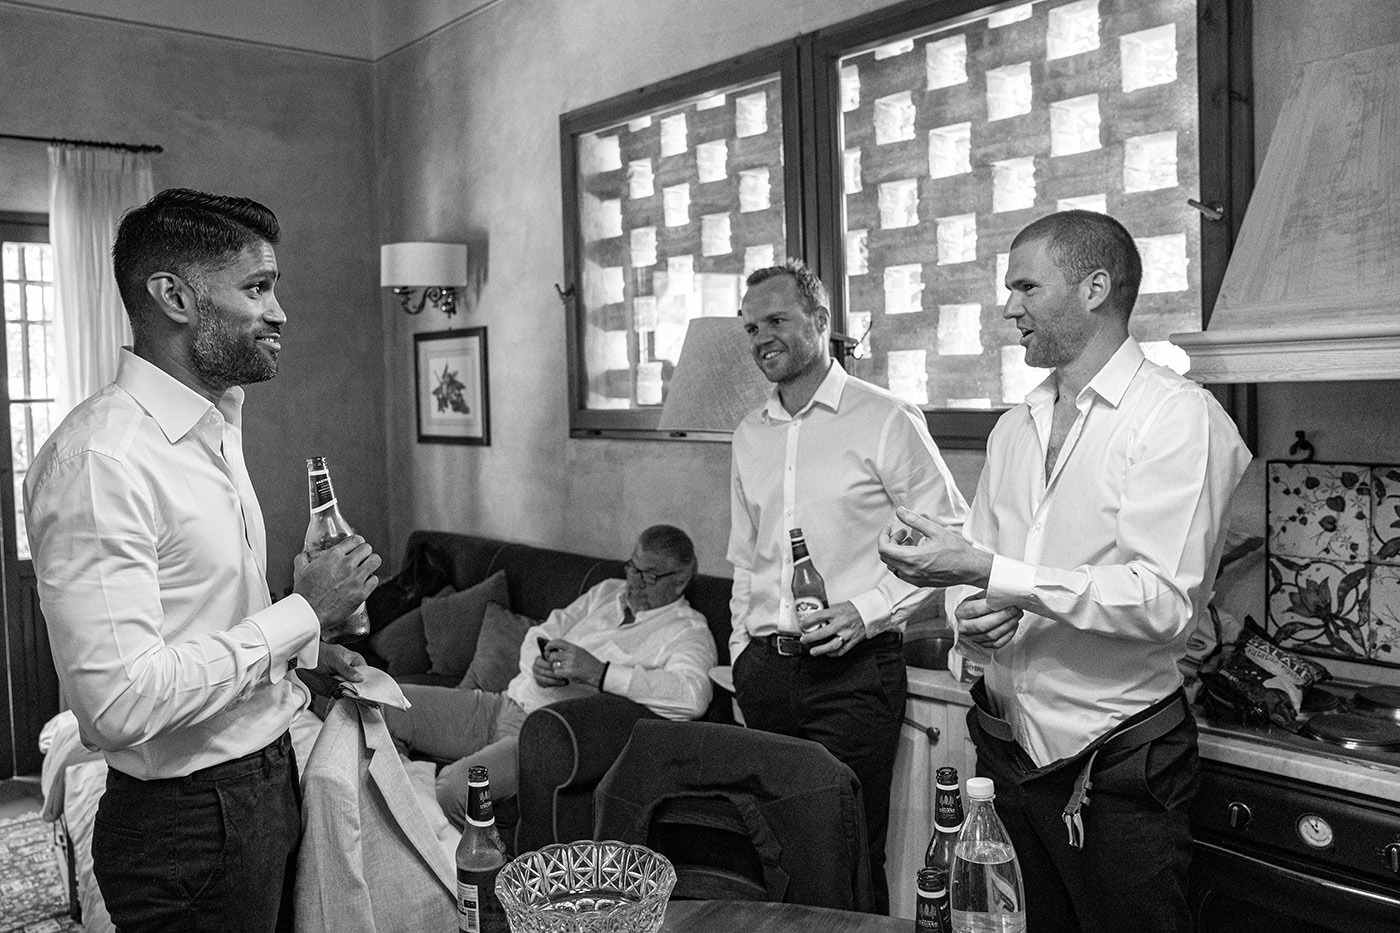 Tuscan Wedding Photo Shoots At Palagio Castle: groomsmen getting ready